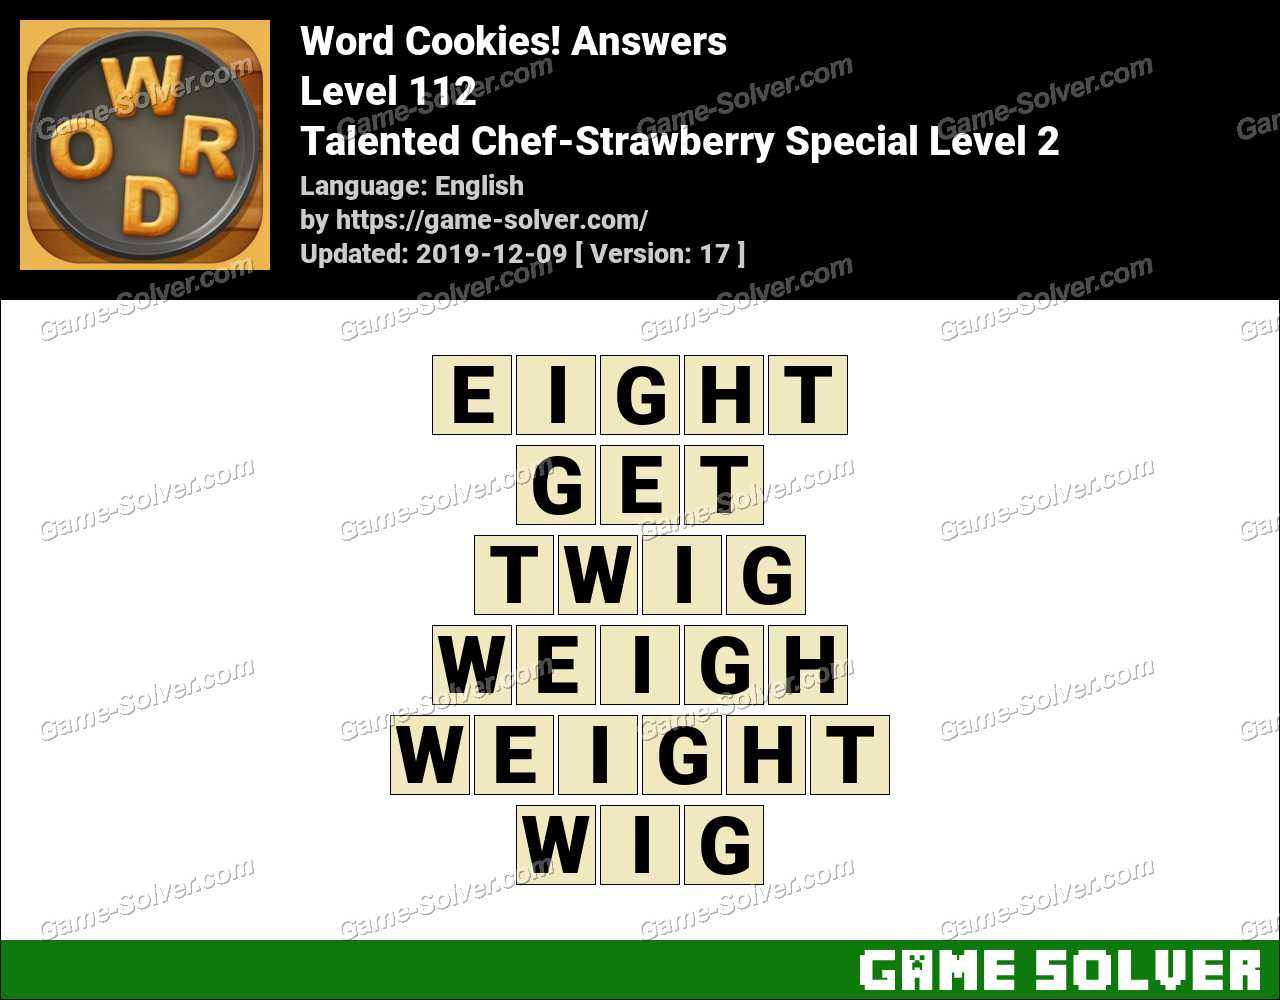 Word Cookies Talented Chef-Strawberry Special Level 2 Answers